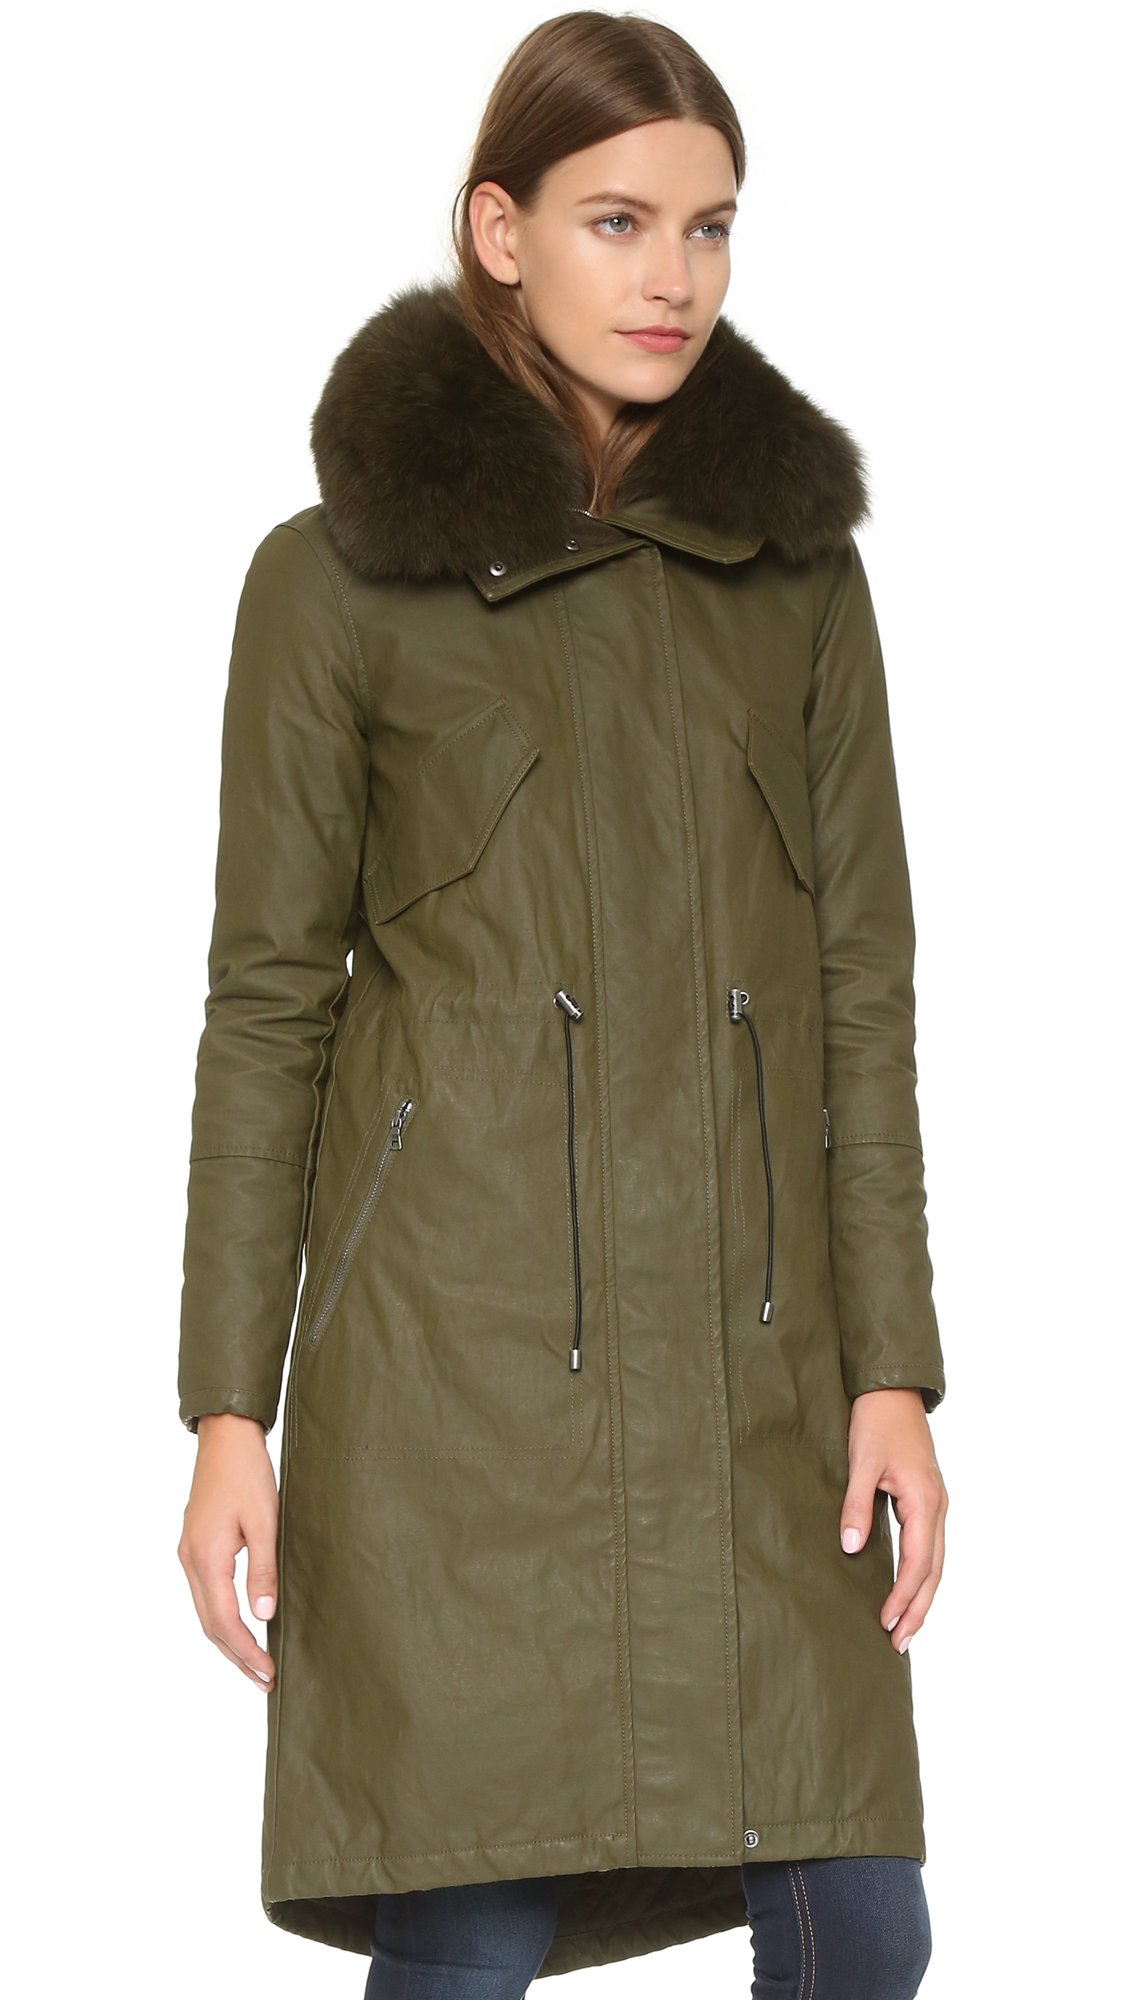 Alice   olivia Quinton Long Hooded Parka - Olive in Green | Lyst